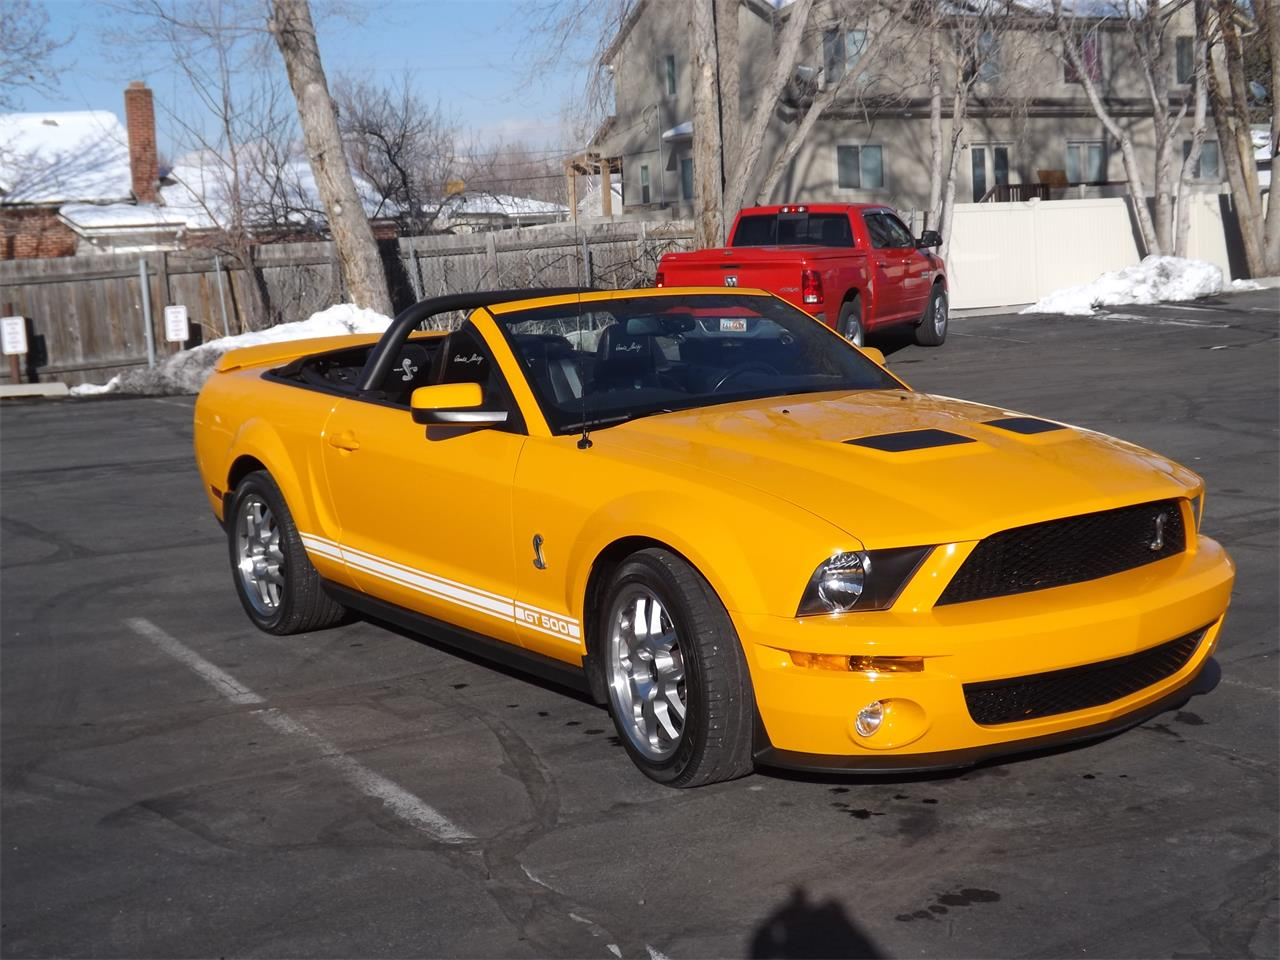 Large picture of 07 mustang shelby gt500 mqsy